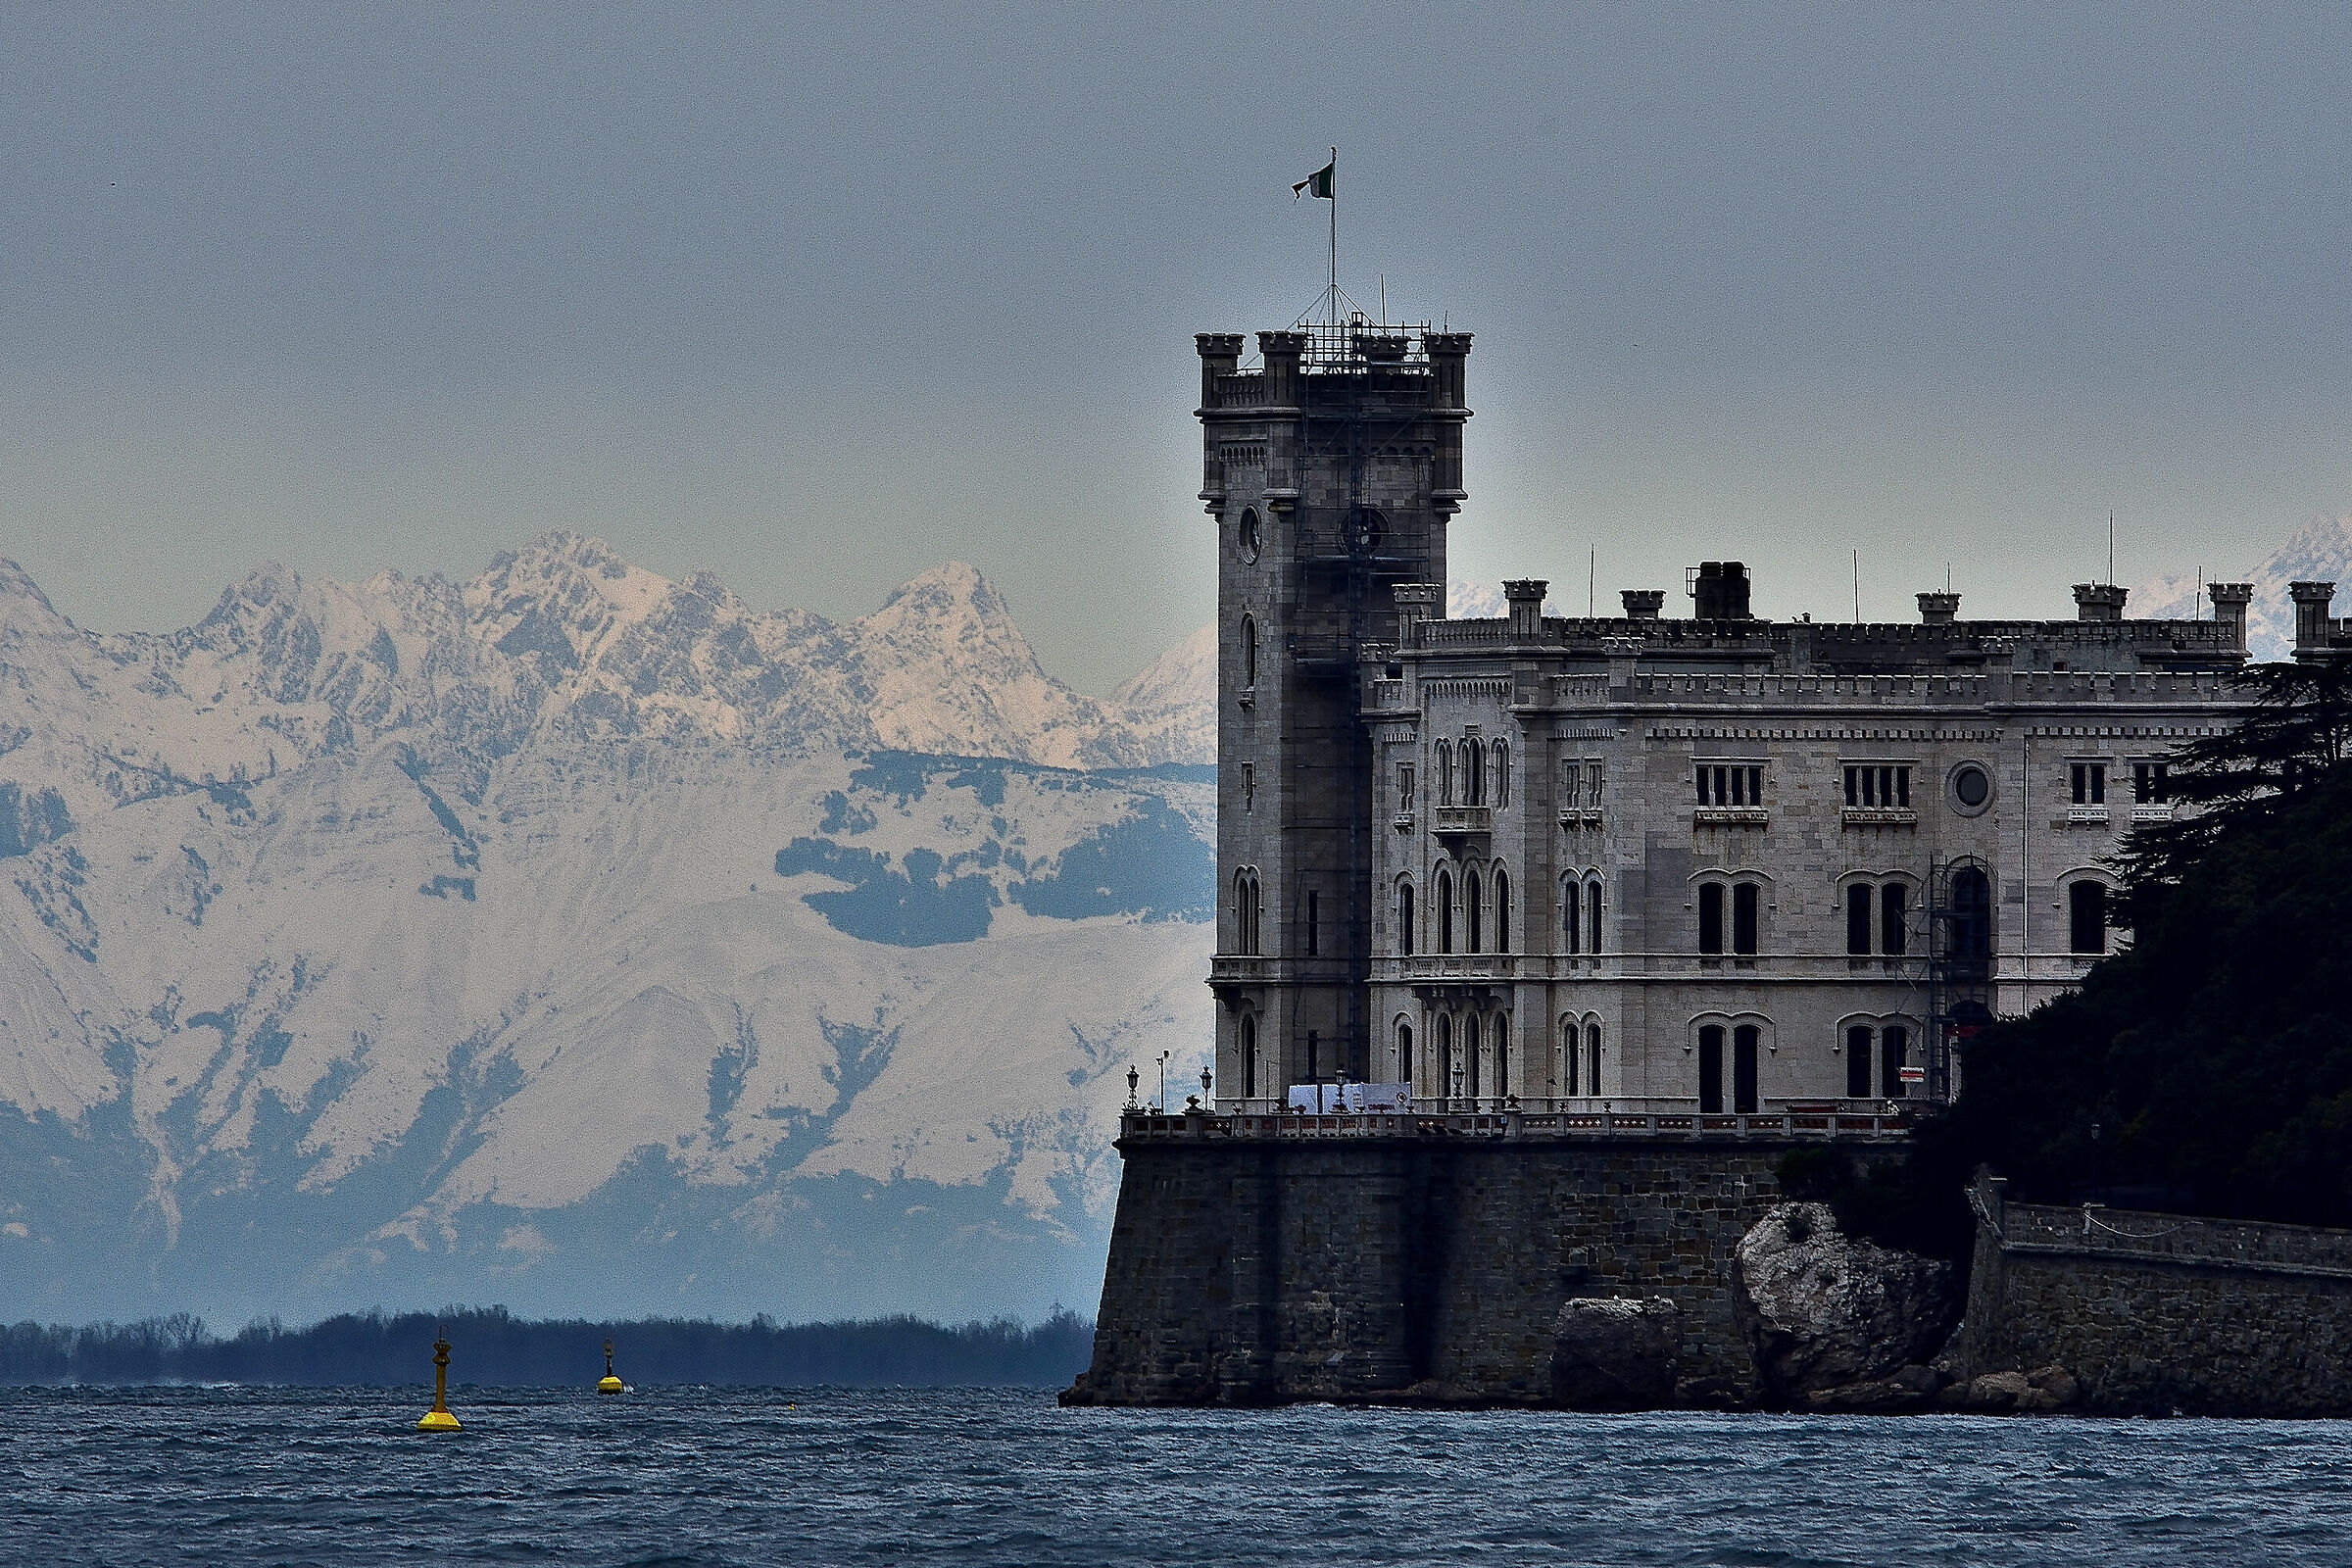 The Castle of Miramare in great shape...